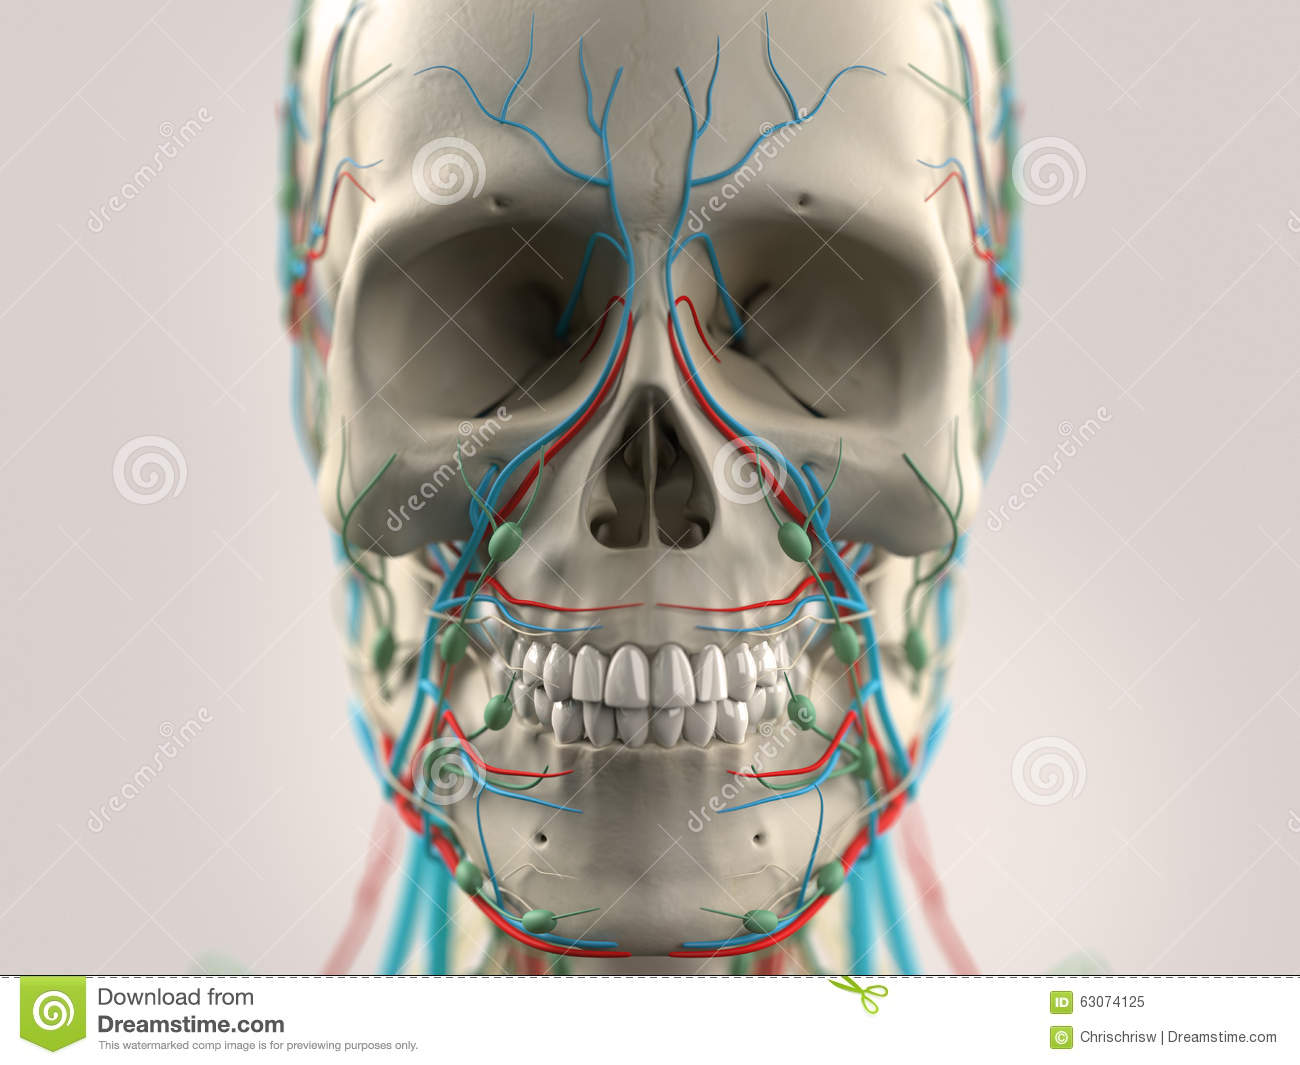 Anatomie Stock Photos - Royalty Free Images - Dreamstime